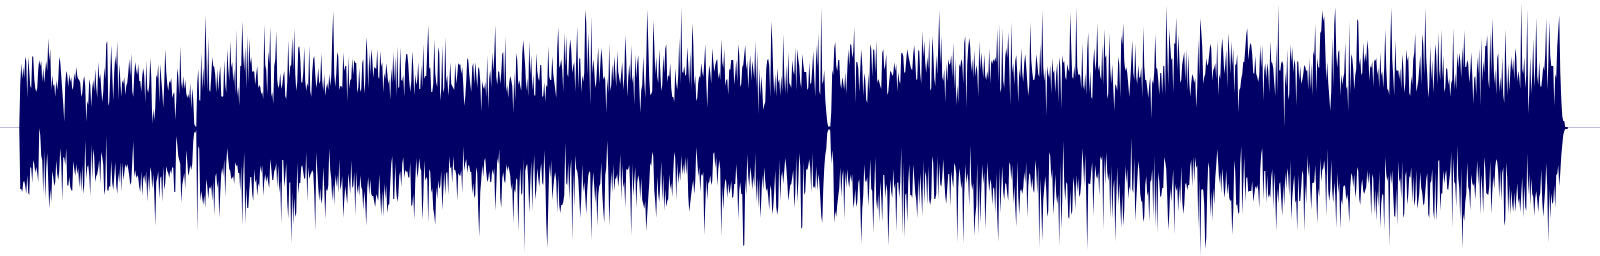 waveform of track #90145